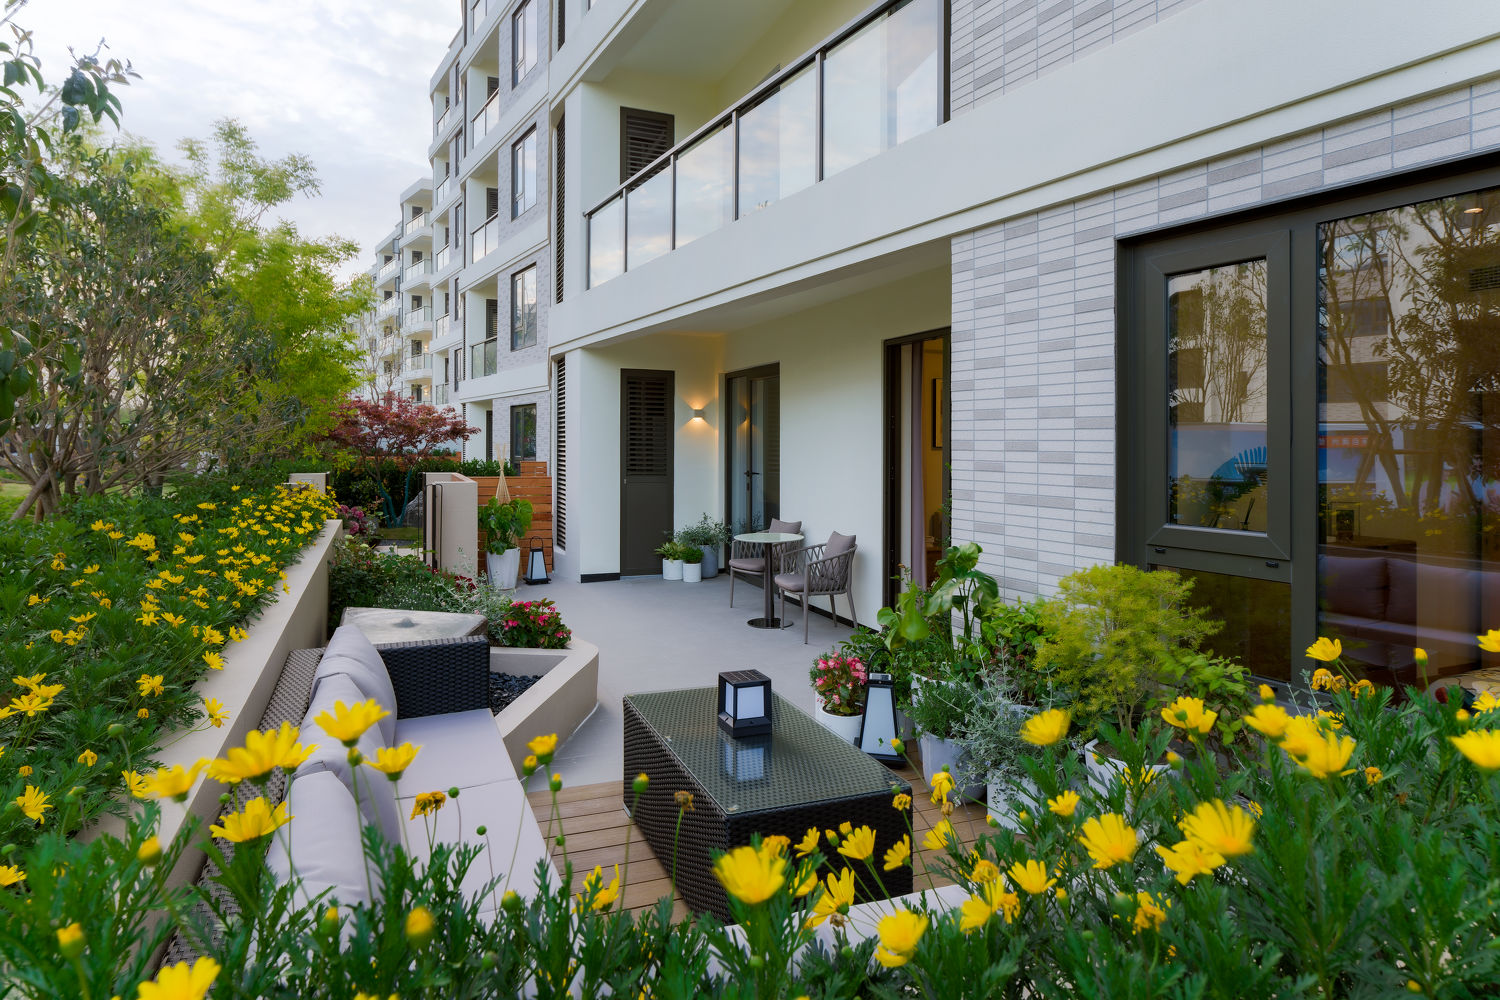 Garden at one of the apartments - EDGEPROP SINGAPORE